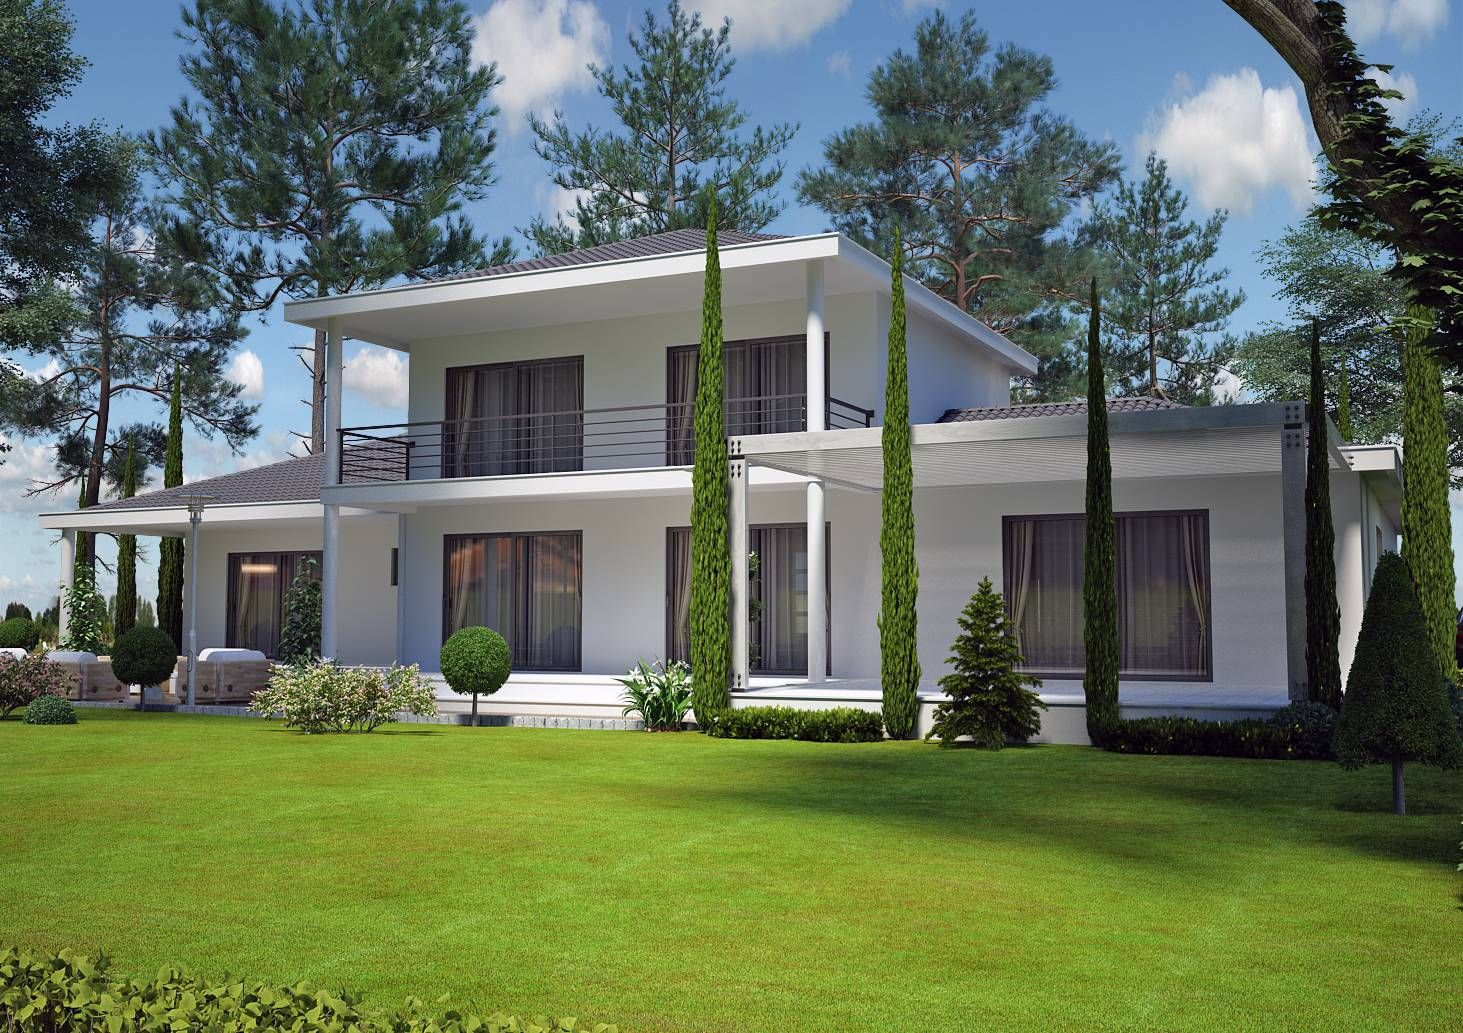 Villa contemporaine 150 m2 etage mod le pinede salon for Plan facade maison moderne